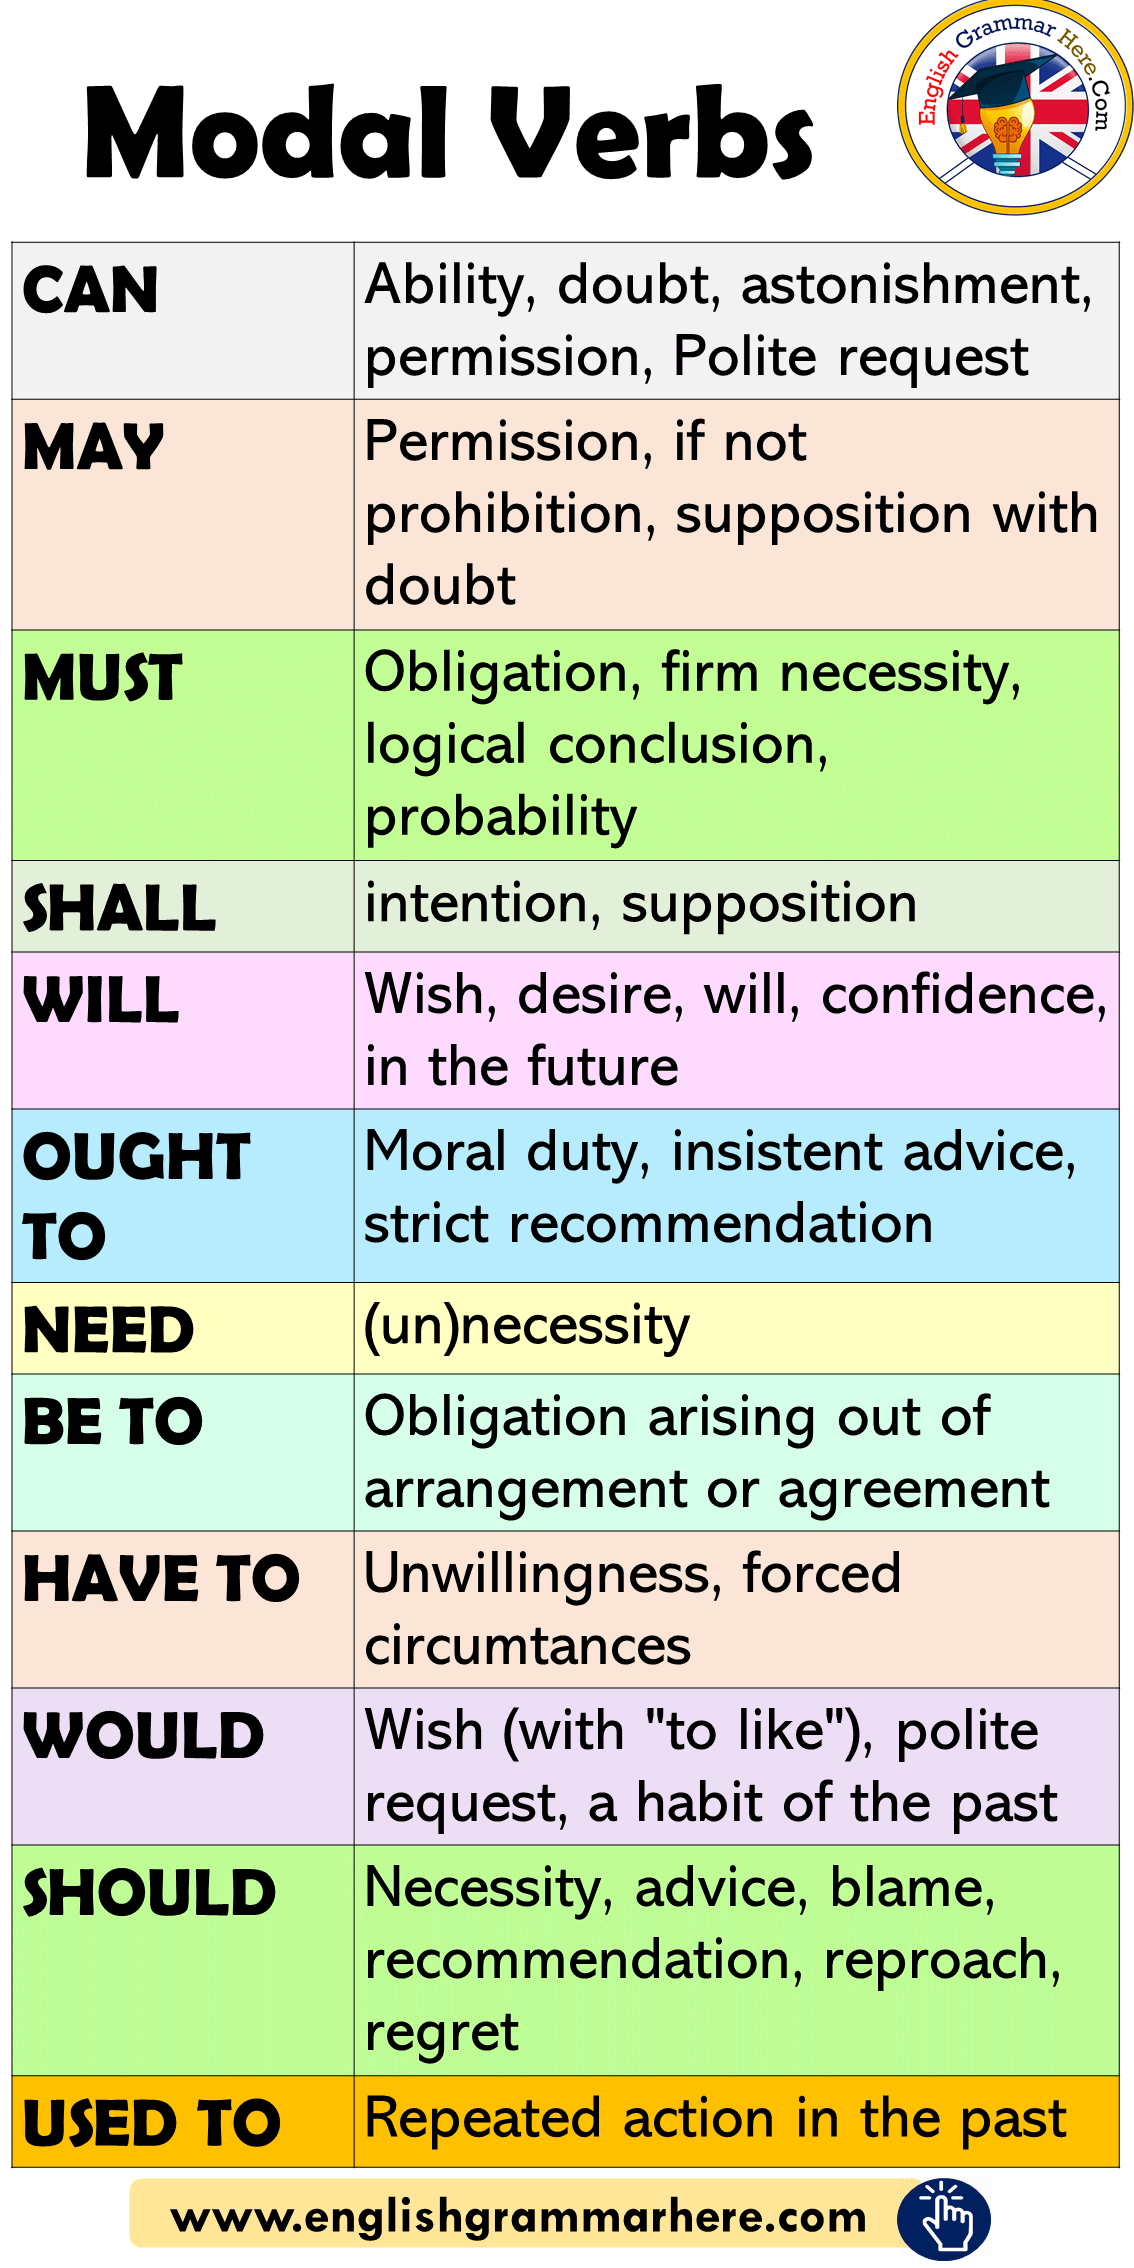 Modal Verbs in English, How to Use Modals